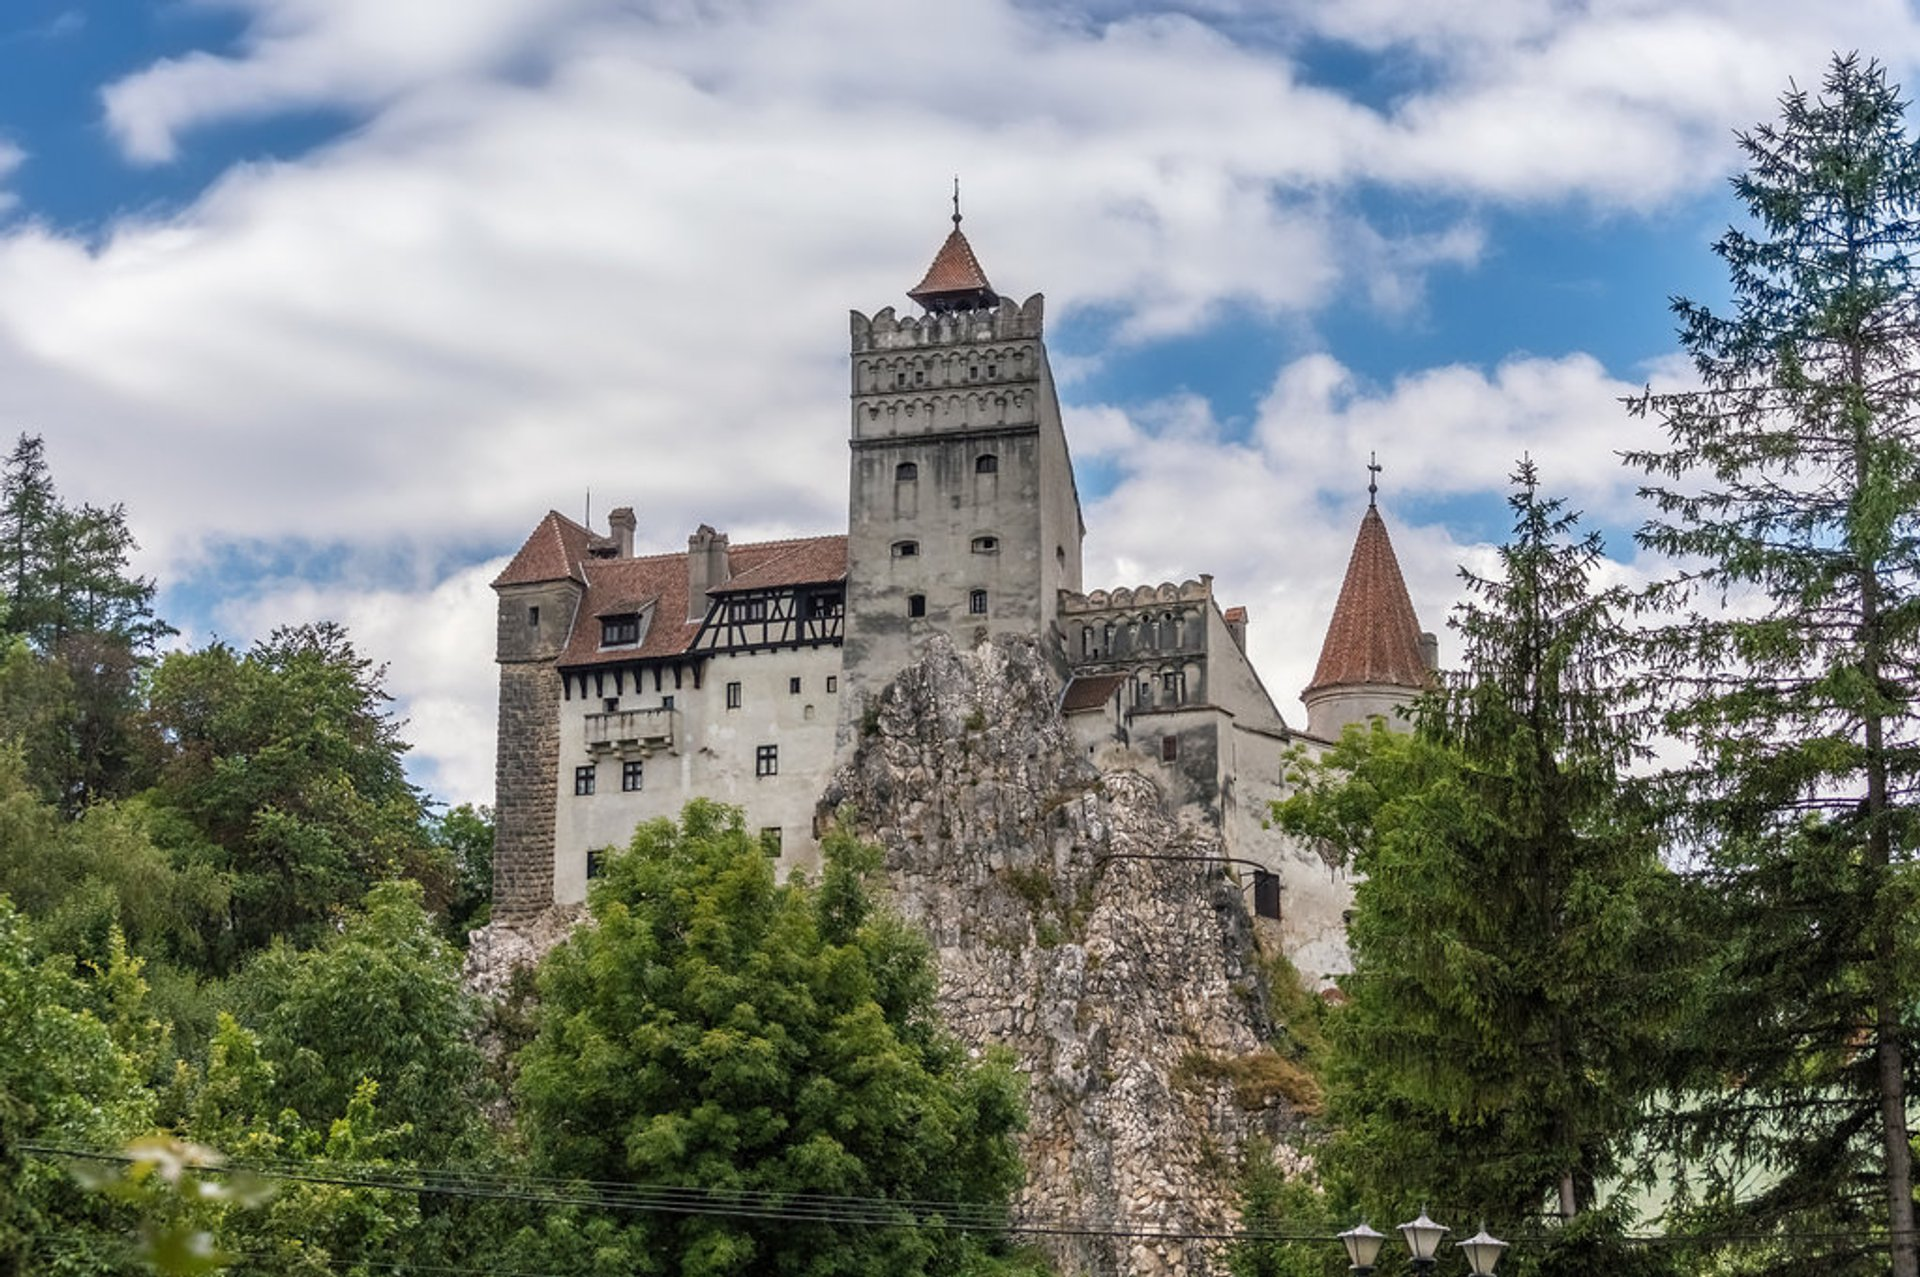 Dracula Tour in Romania - Best Season 2020